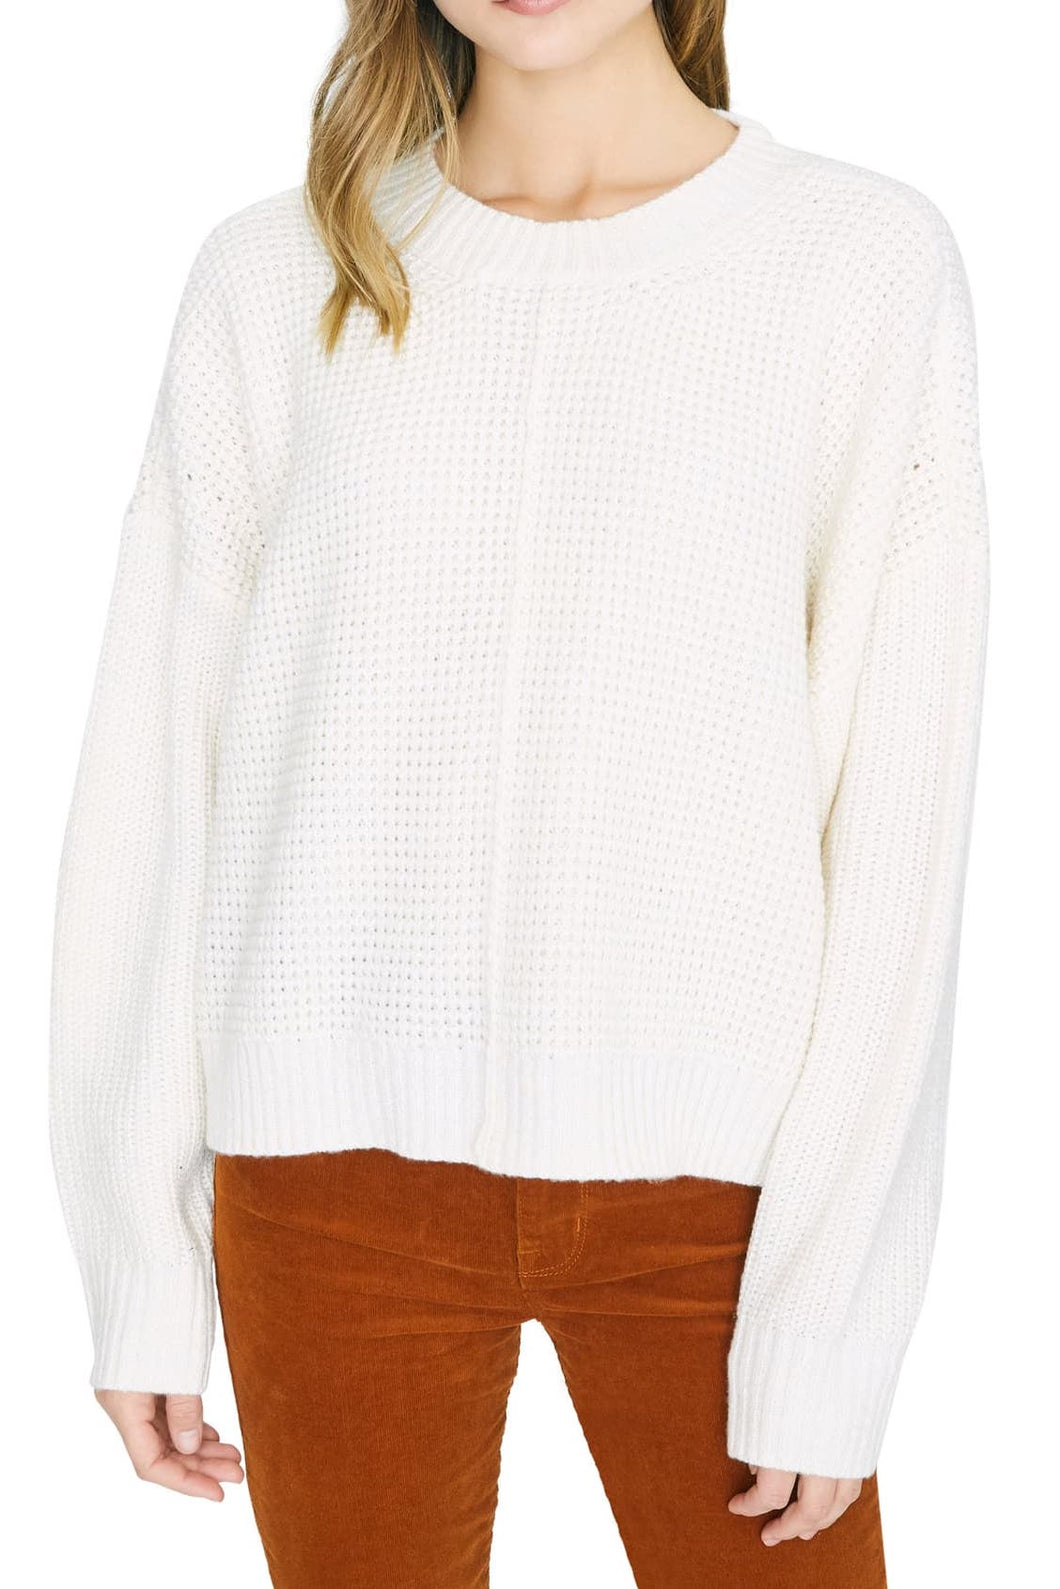 Moonstone Sorry Not Sorry Sweater